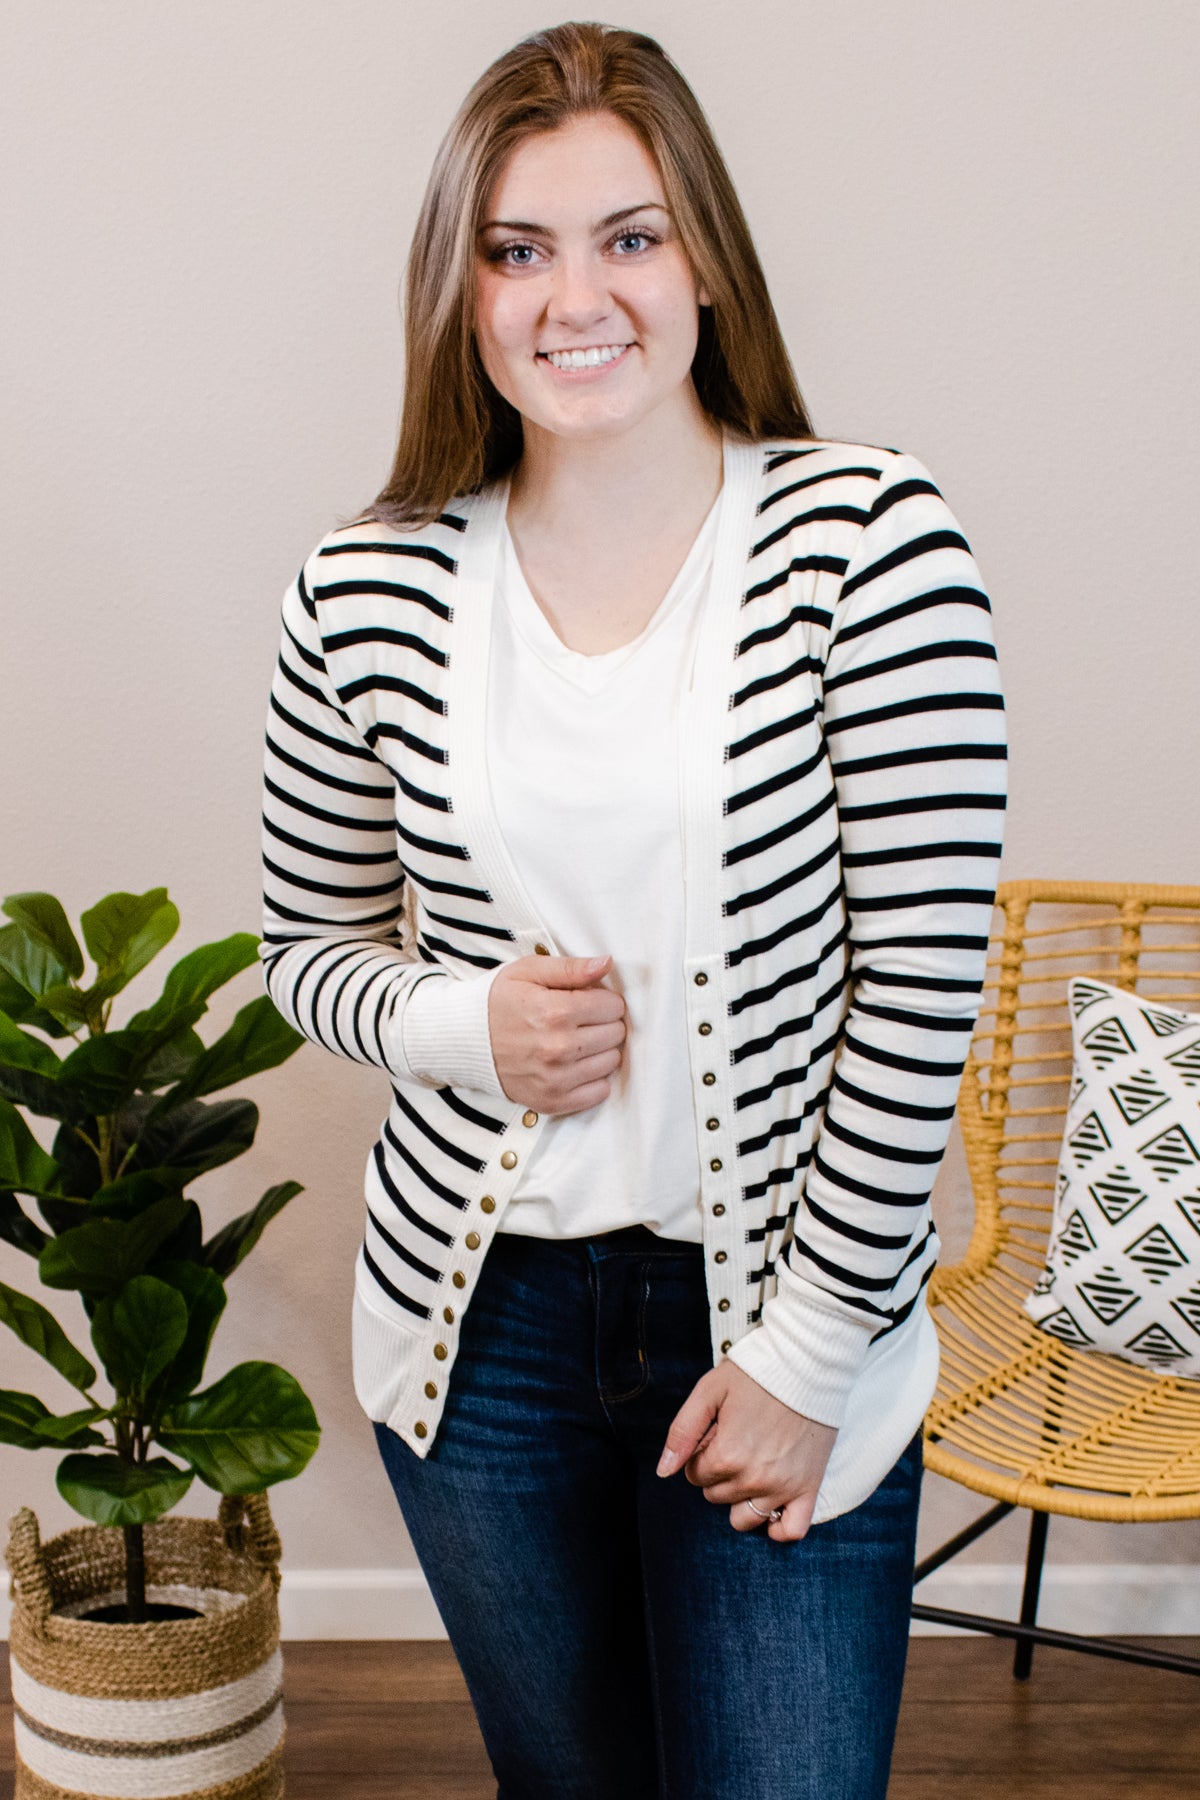 Stacey Striped Ivory Snap Cardigan - Onyx & Oak Boutique